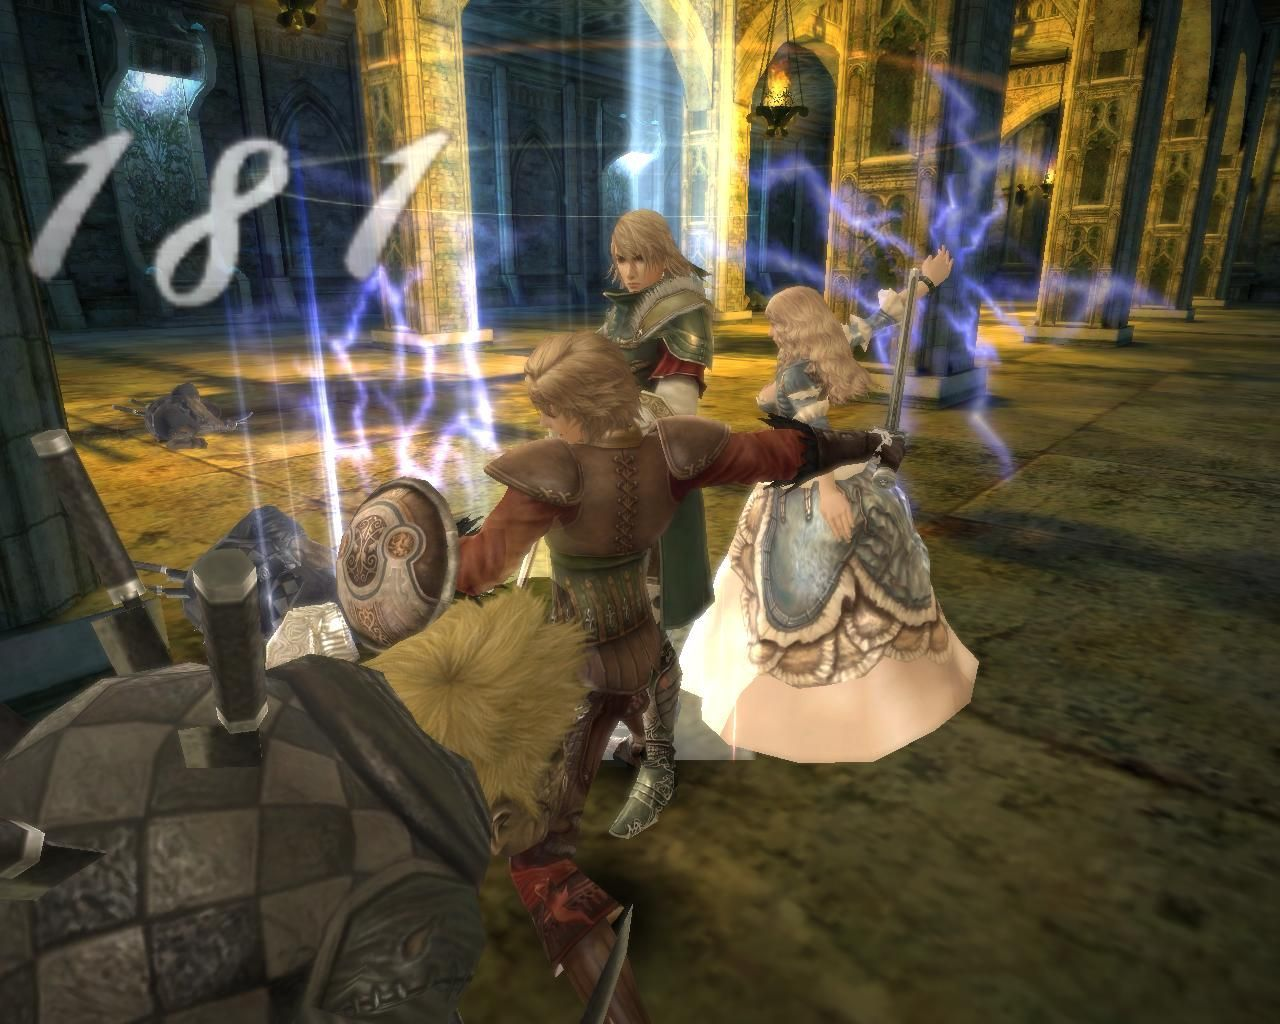 Sword Of Thenew World: Sword Of The New World PC Galleries